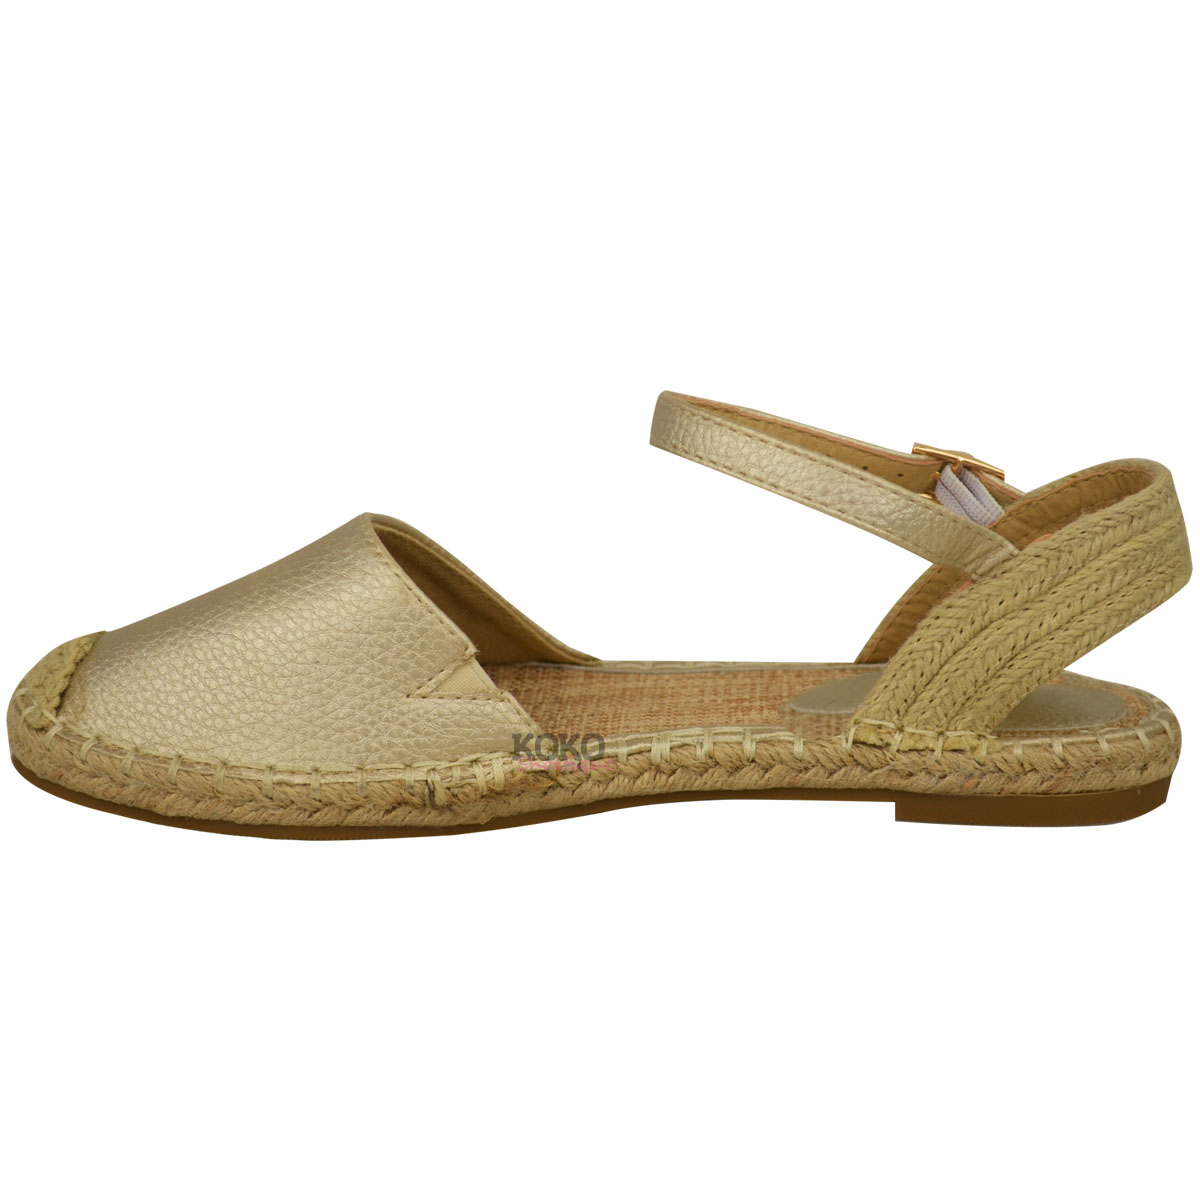 Overstock uses cookies to ensure you get the best experience on our site. If you continue on our site, you consent to the use of such cookies. Learn more. OK Women's Flats. Clothing & Shoes / Shoes / Limelight Womens Alia Slip On Mini Wedge Flat Shoes, Taupe. SALE. Quick View.